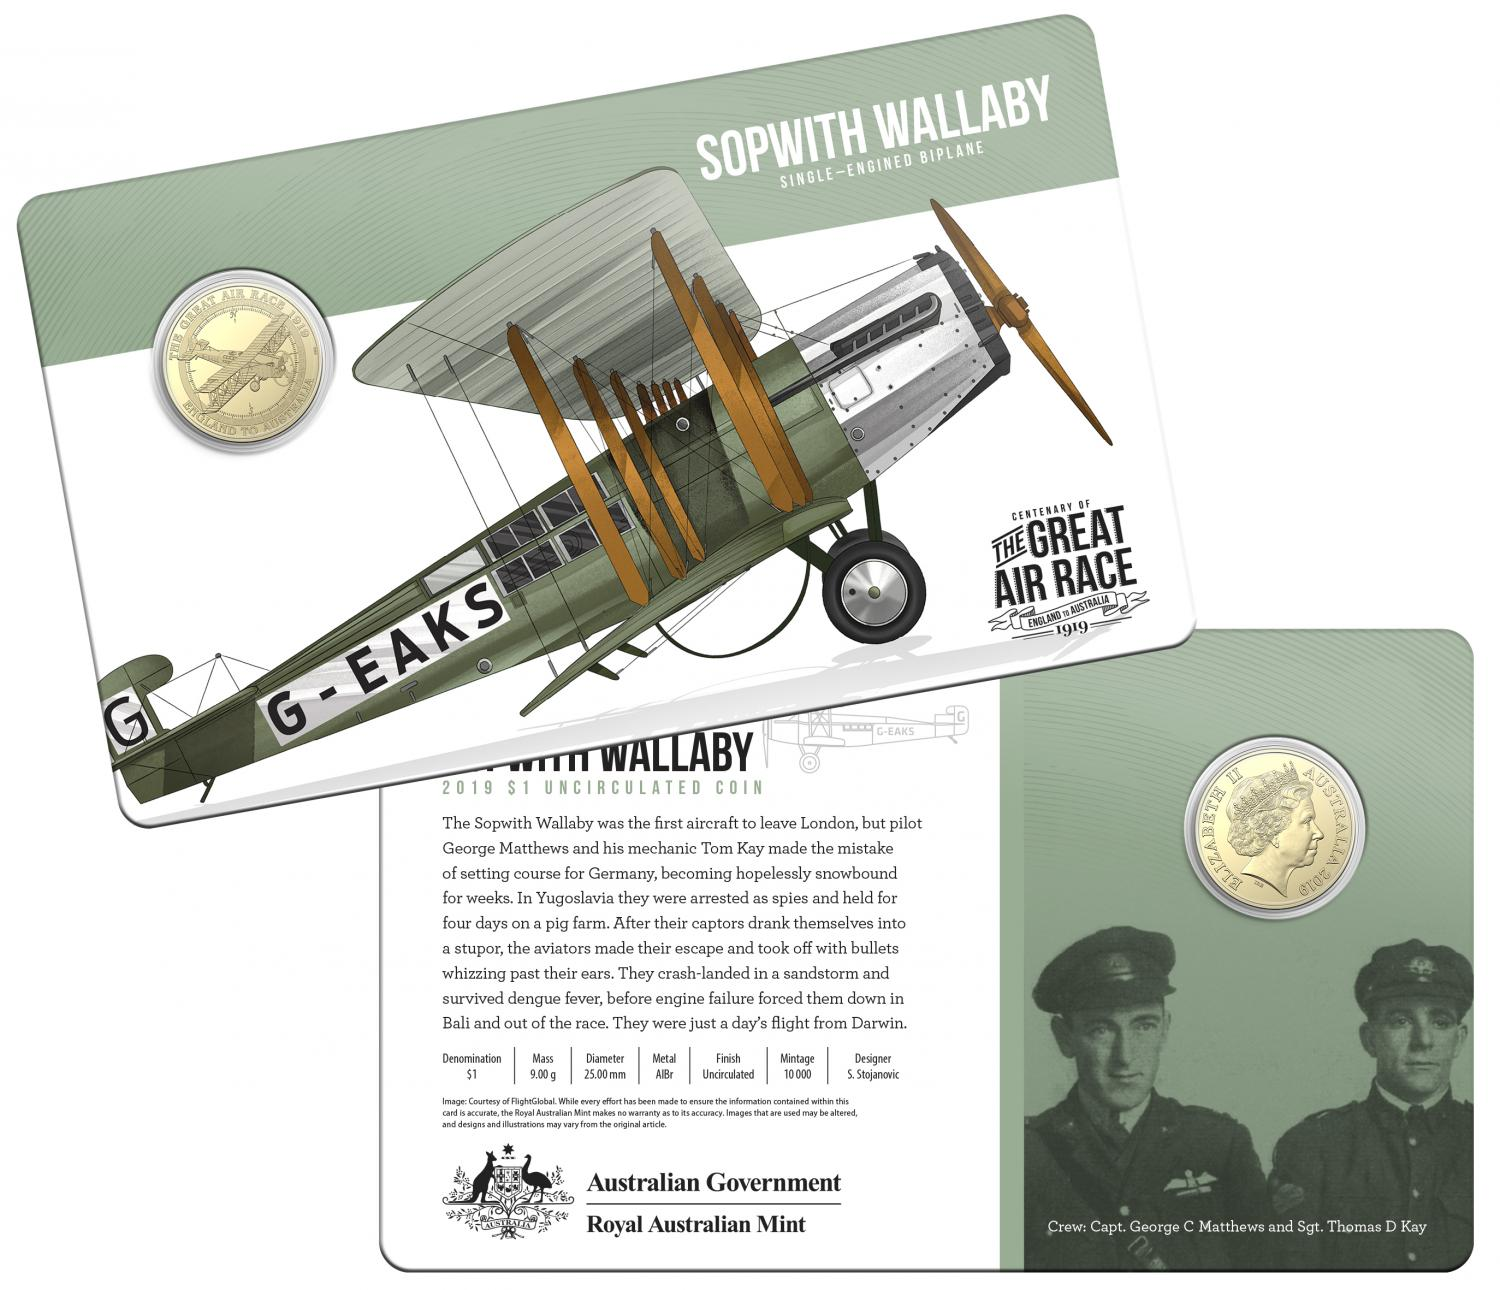 Thumbnail for 2019 Centenary off the Great Air Race Uncirculated $1.00 - Sopwith Wallaby